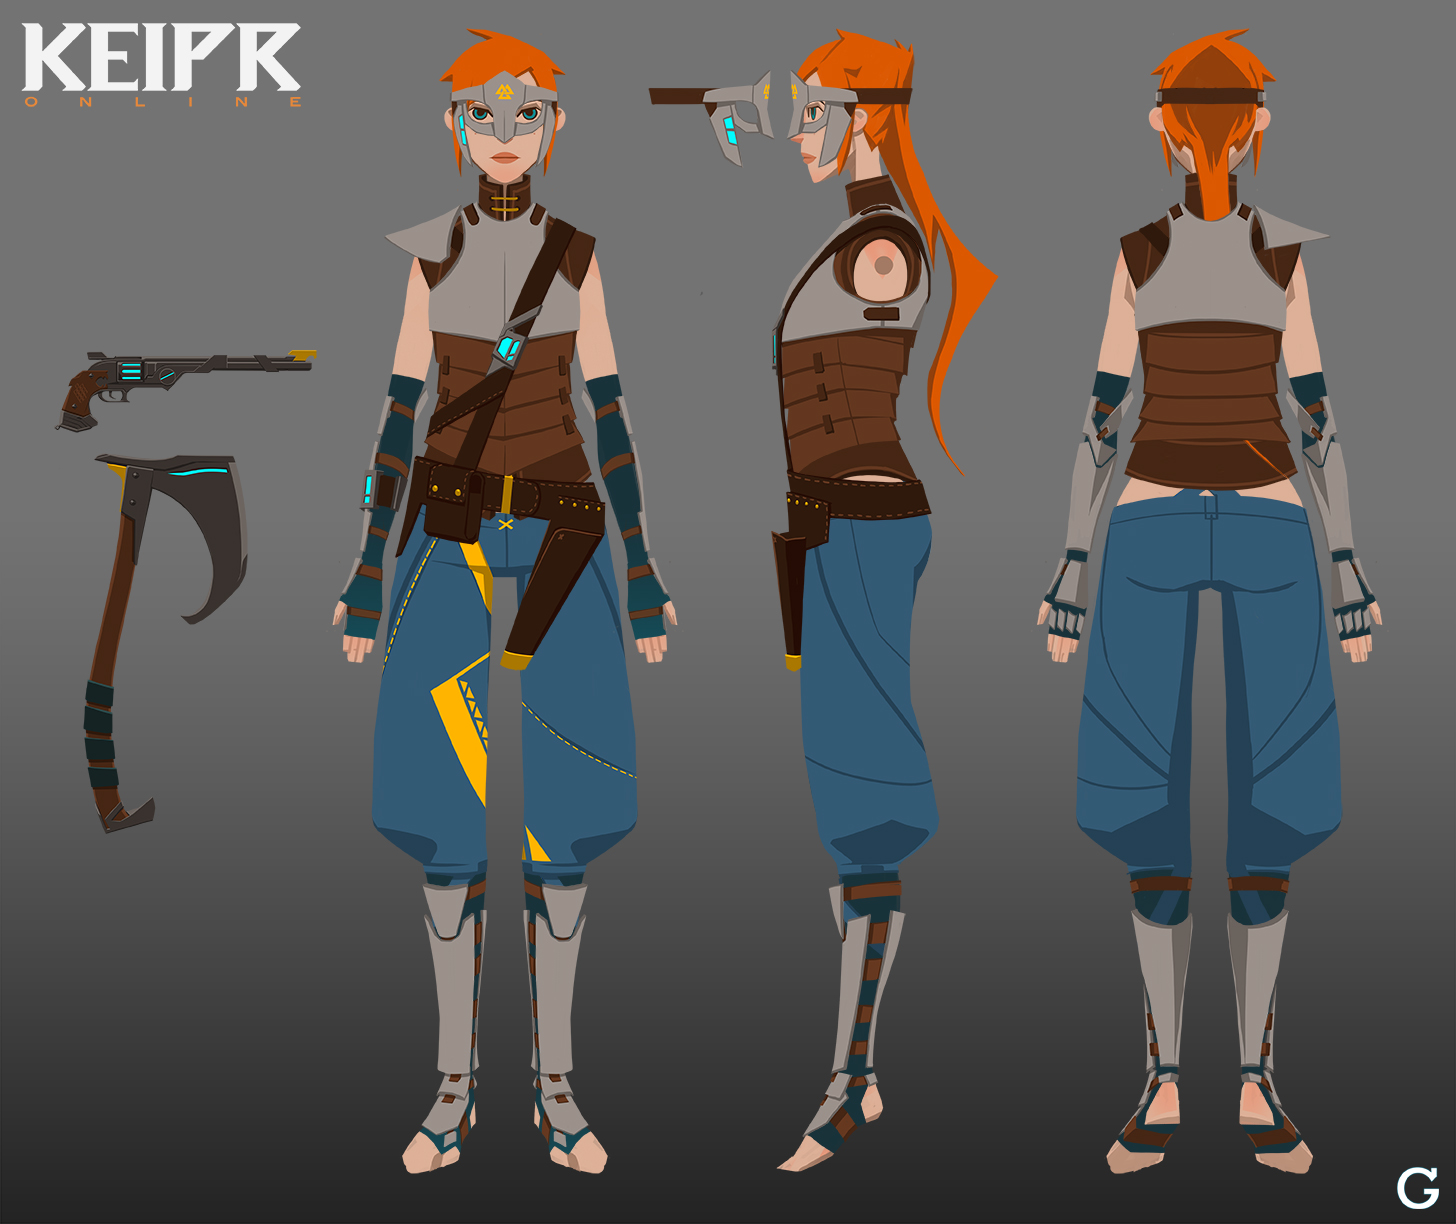 Fantasy Character Design Sheet : Keipr online female archetype by troygalluzzi on deviantart